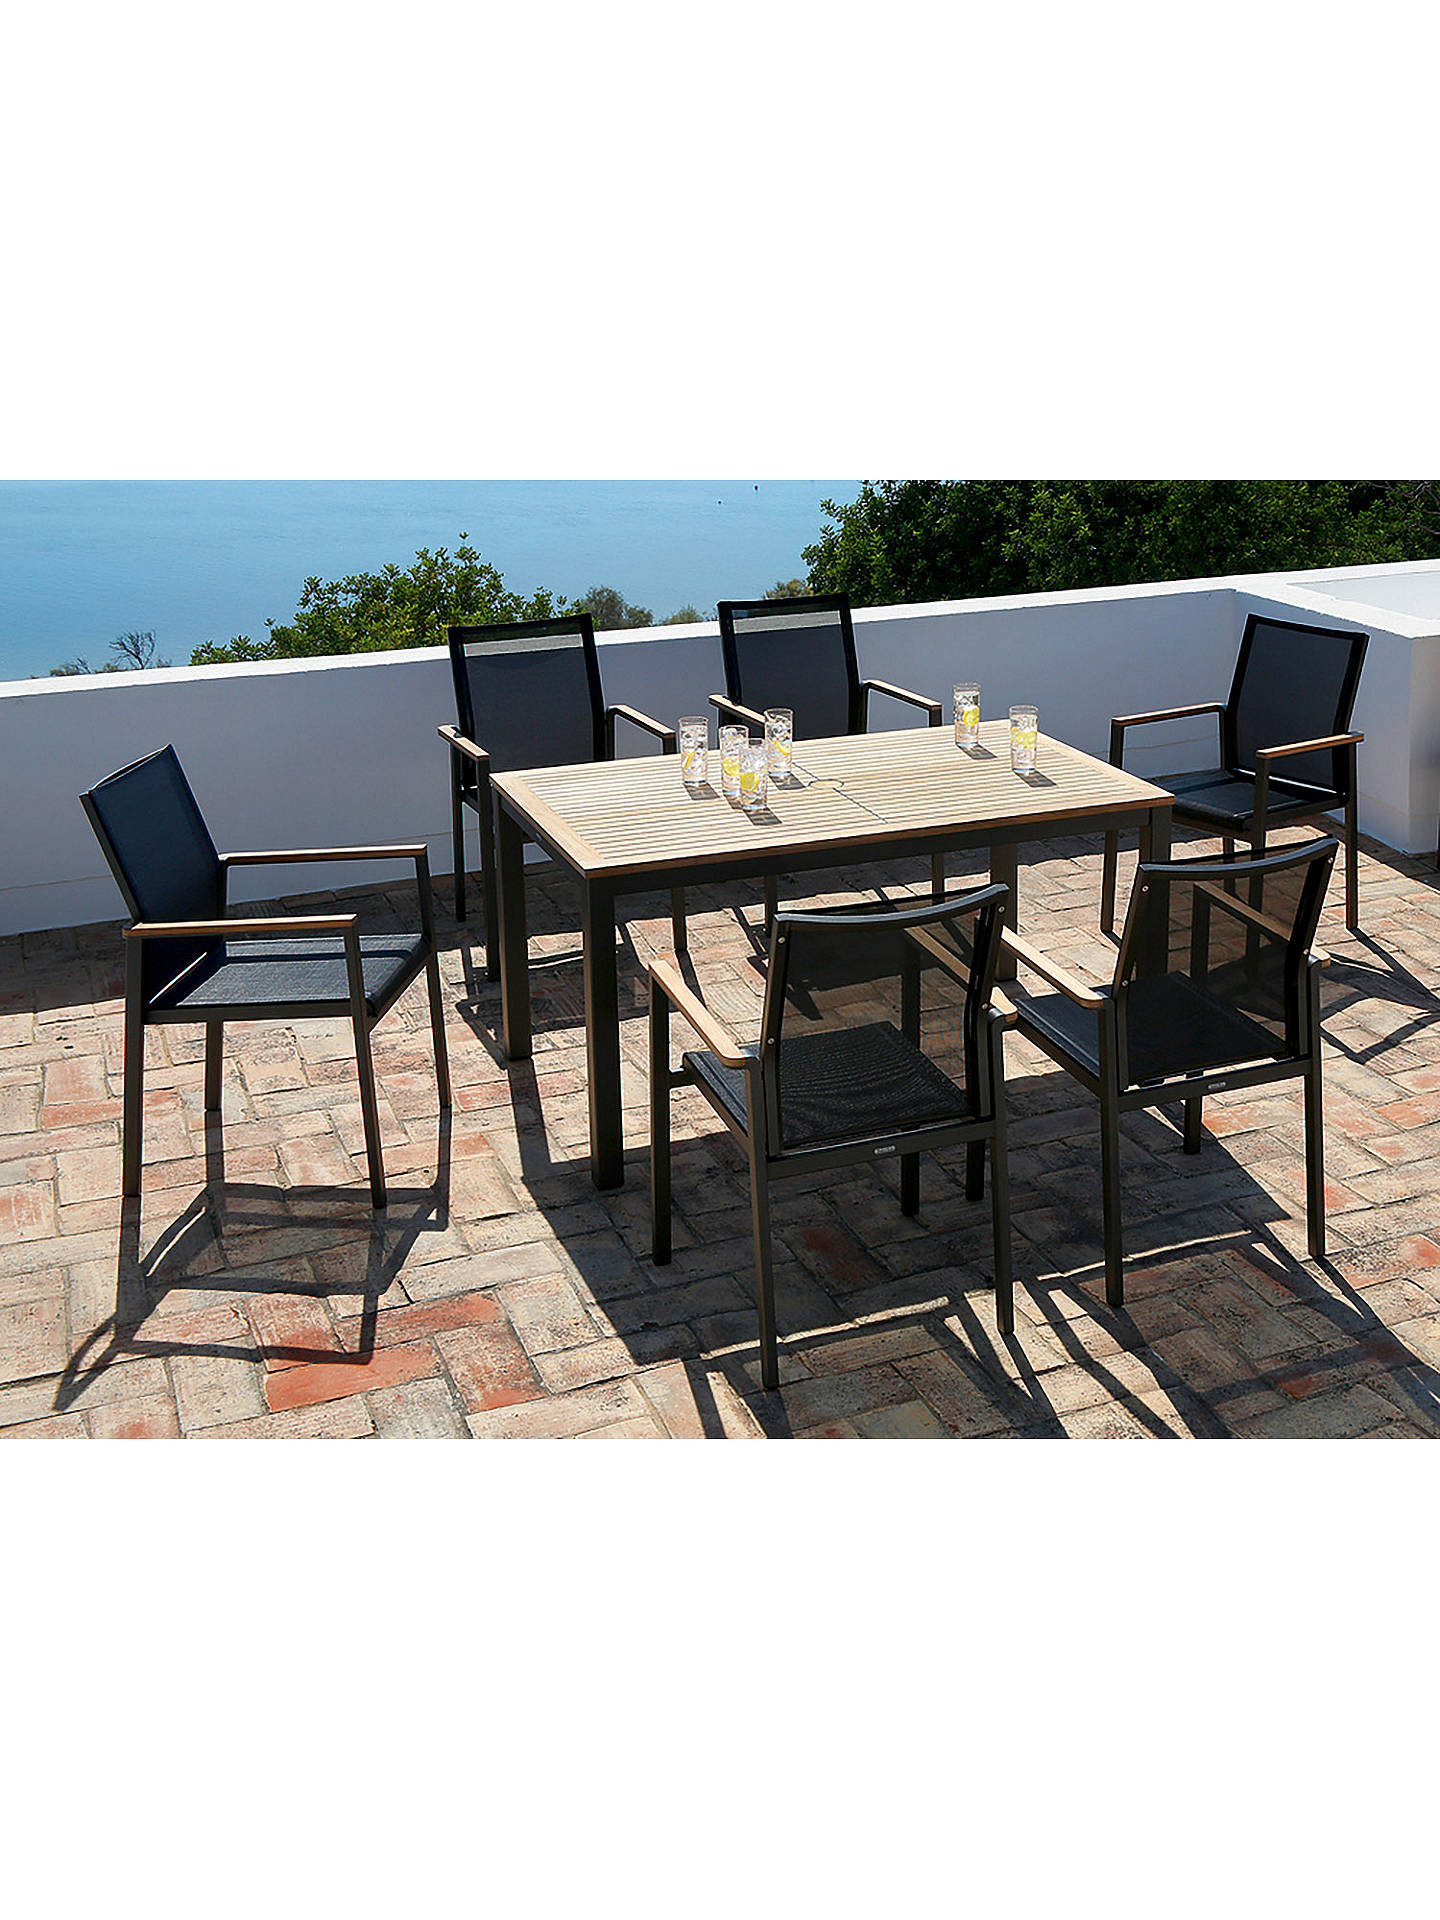 Buy Barlow Tyrie Aura 6-Seater Teak Wood Garden Dining Table and Stacking Armchairs Set, Graphite/Charcoal Online at johnlewis.com